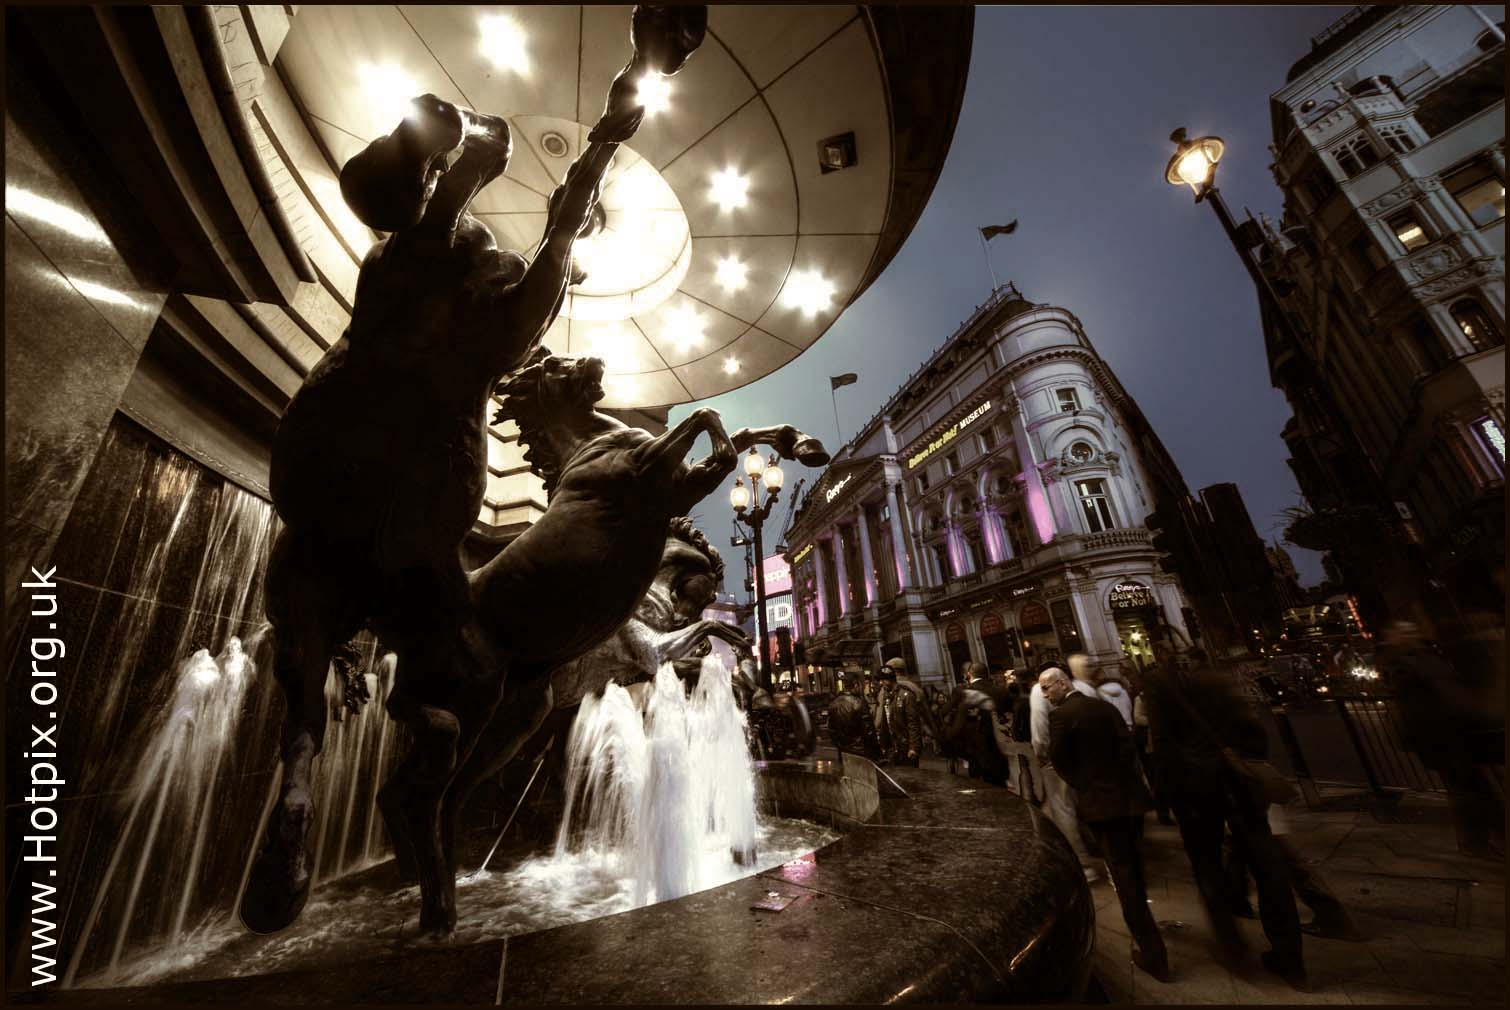 statue,art,work,artwork,artist,horses,picaddilly,picadily,london,night,dusk,shot,low,light,wate horses,water,uk,england,streets,people,interesting,tonysmith,hotpix,hotpixuk,tony,smith,coventry,road,haymarket,criterion,theatre,land,theatreland,sigma,12-24mm,sigma12-24mm,wide,angle,lens,hotpics,hotpic,hotpick,hotpicks,place,places,wide angle lens,building,buildings,built,architecture,narrative,arty,stream,lightstream,wideangle,10-20mm,#tonysmithhotpix